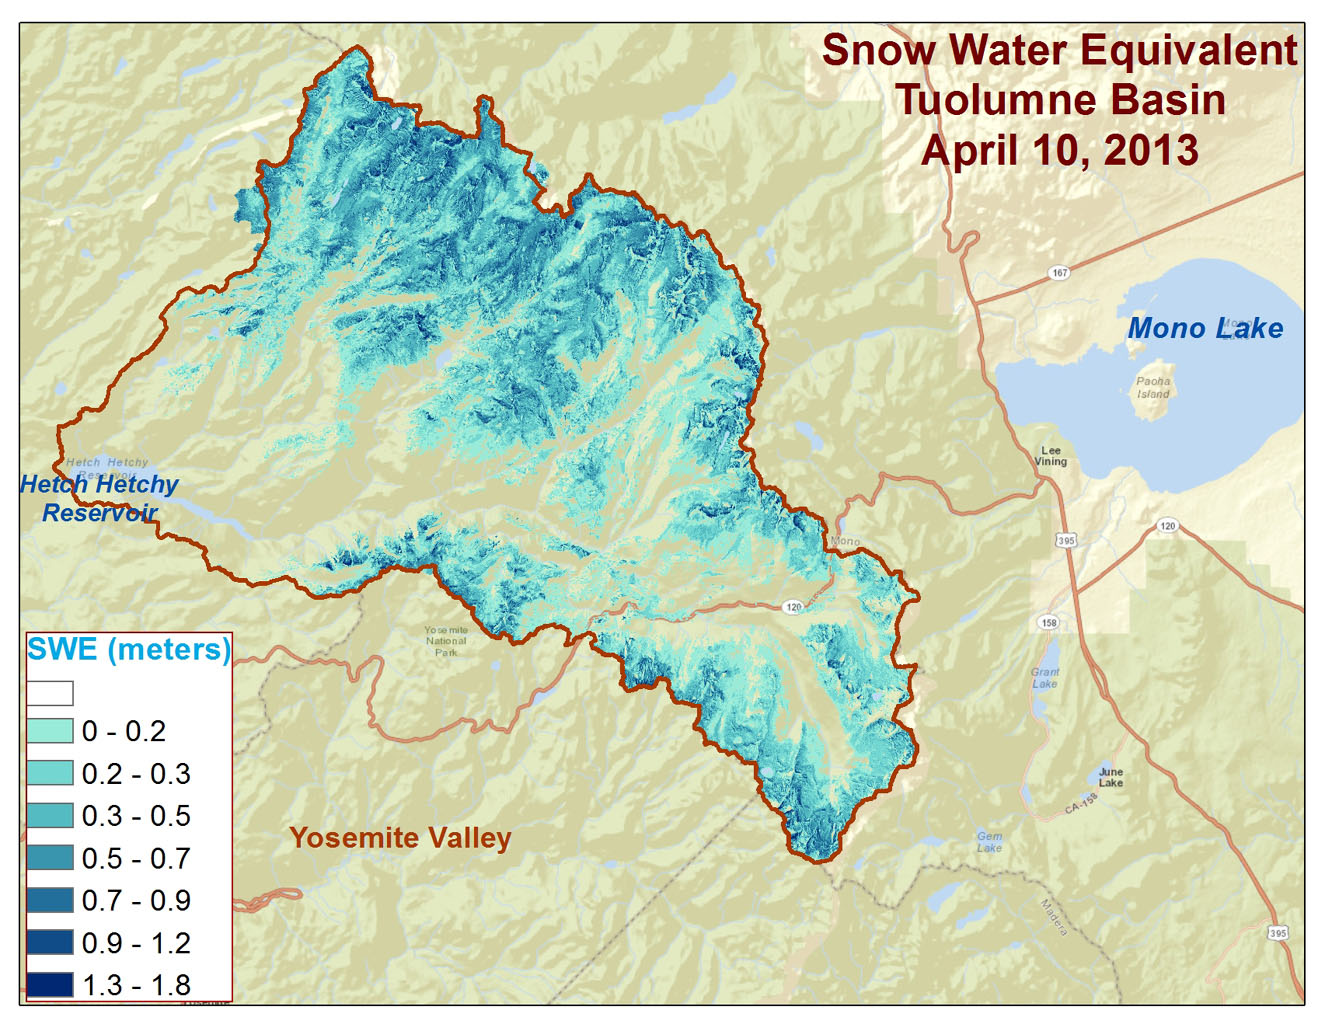 Spatial distribution of snow water equivalent across the Tuolumne River Basin from April 10 to June 1, 2013 as measured by NASA's Airborne Snow Observatory.